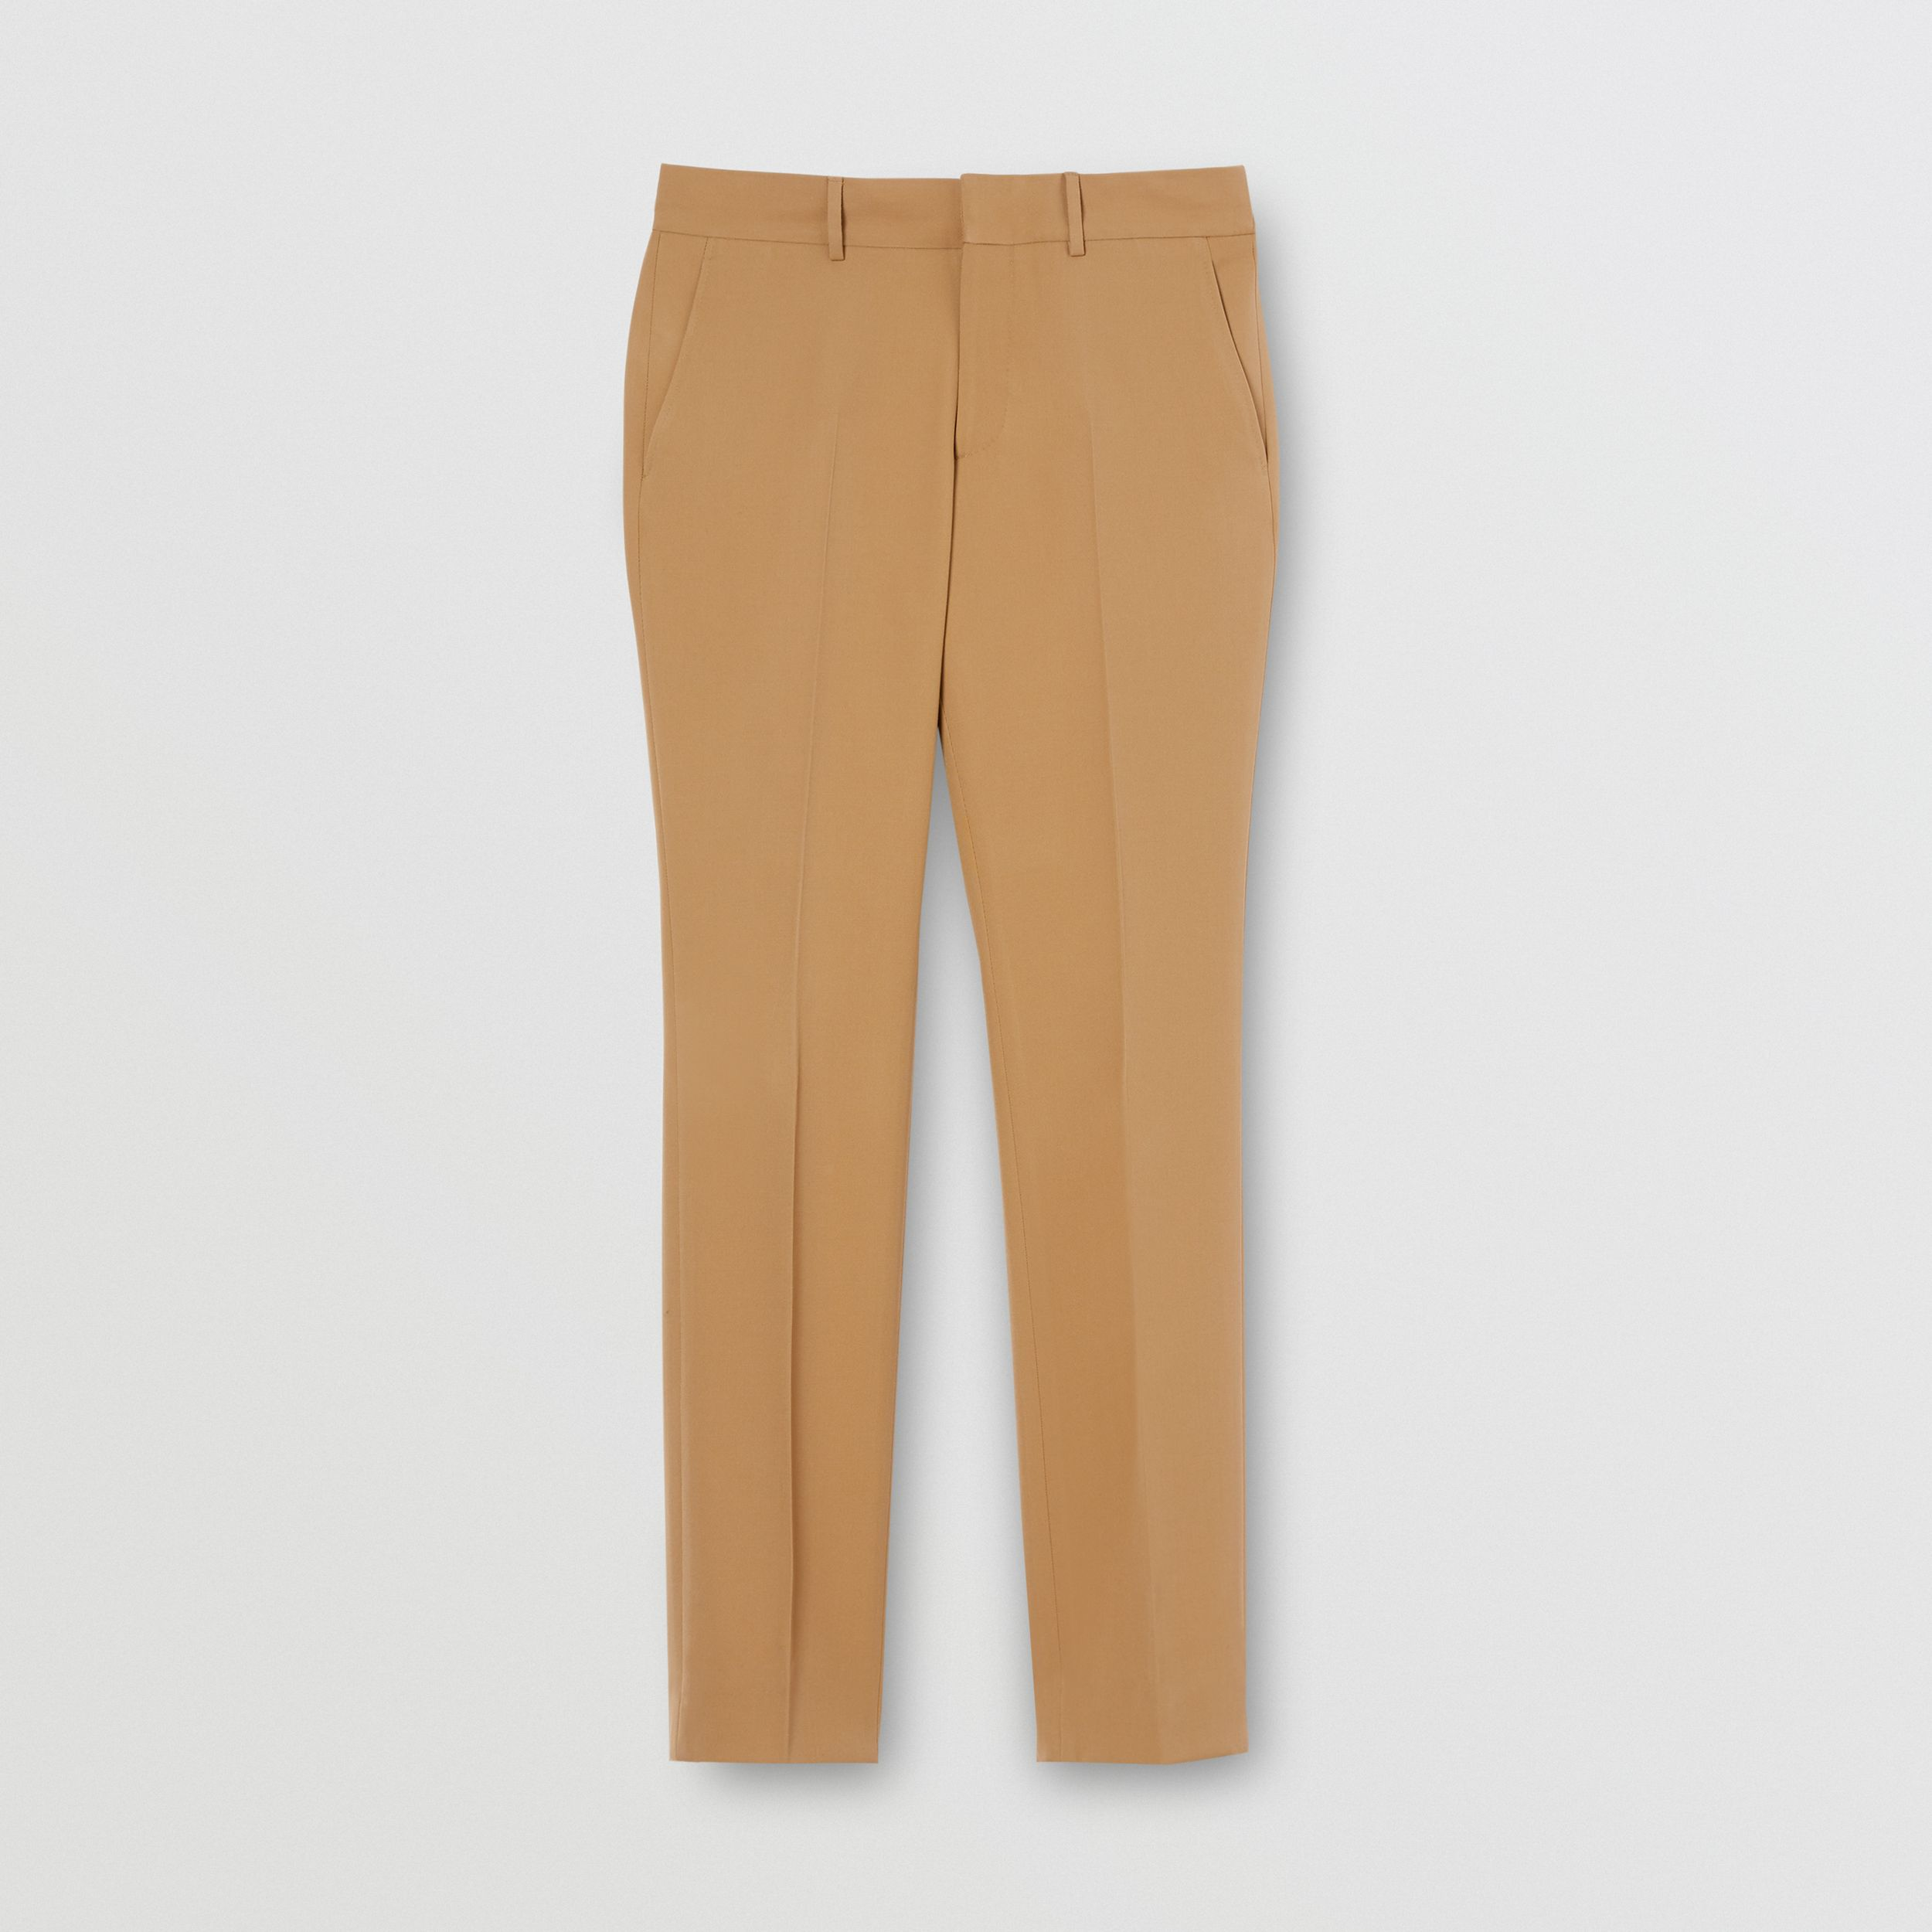 Dry Wool Twill Tailored Trousers in Dark Tan | Burberry - 4